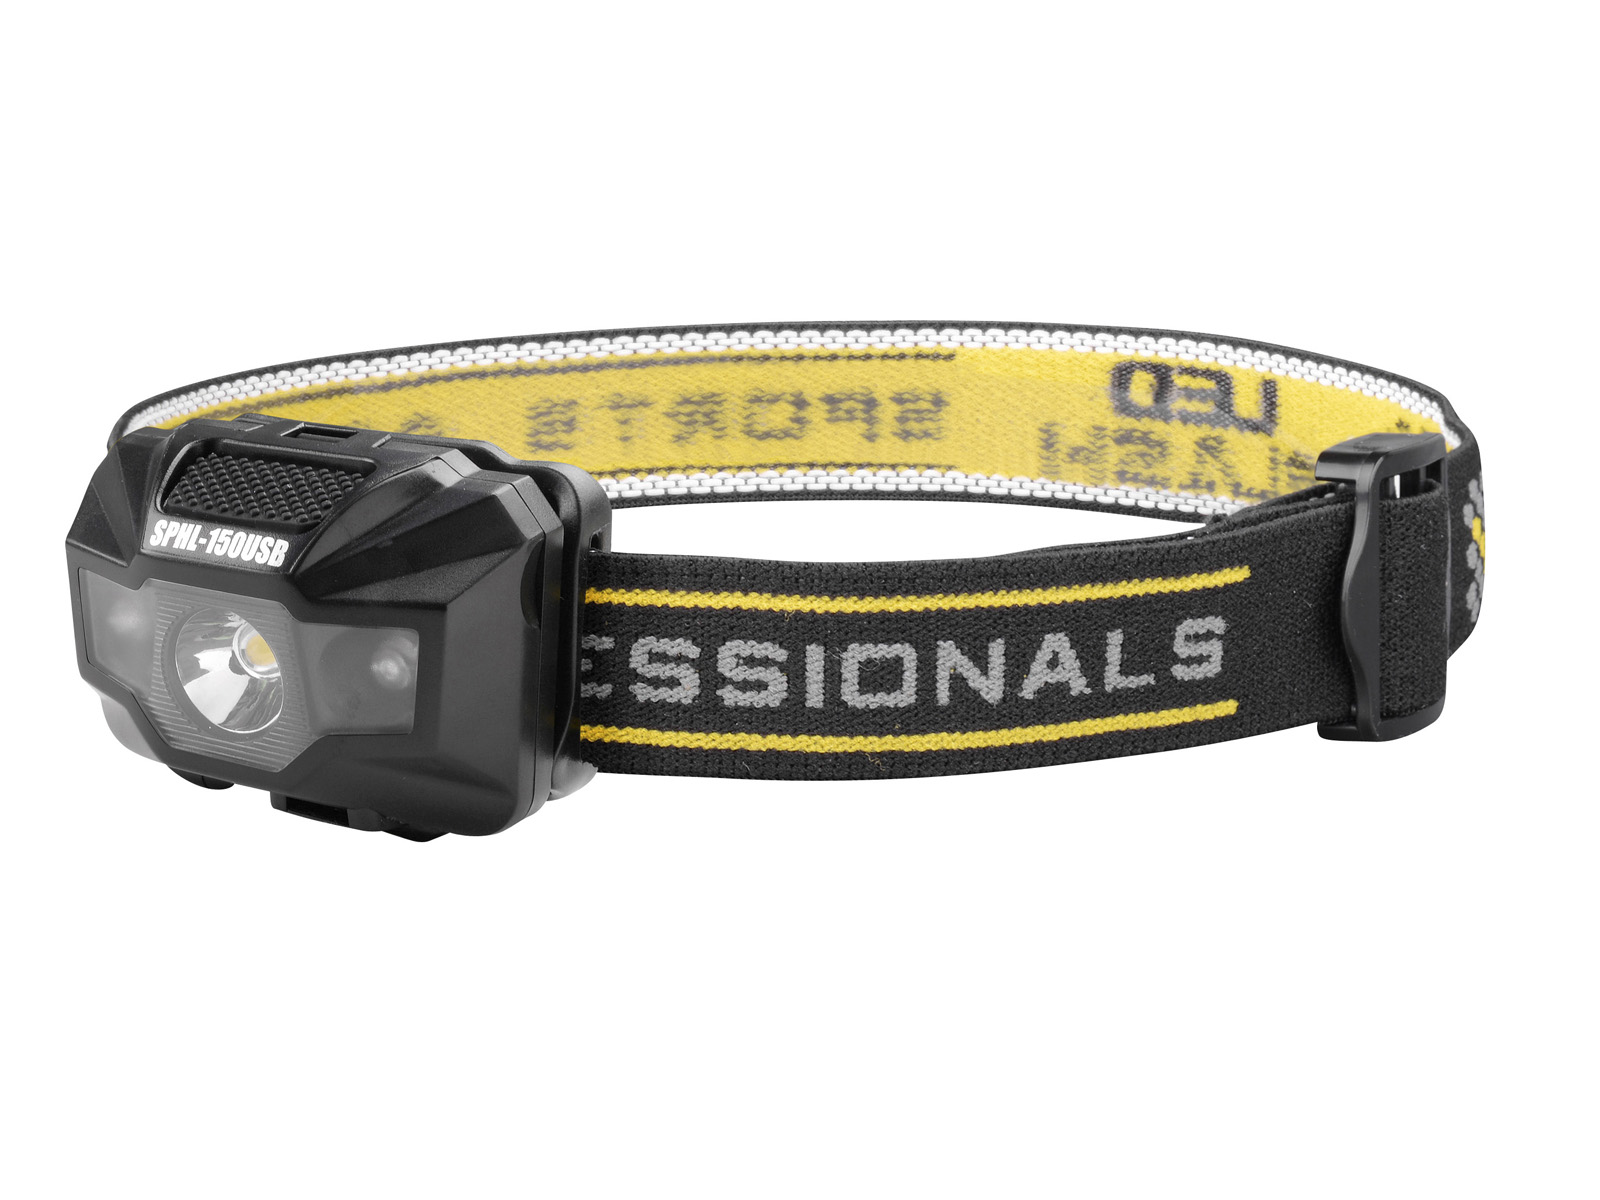 SPRO USB Rechargeable LED Head Lamp SPHL150USB